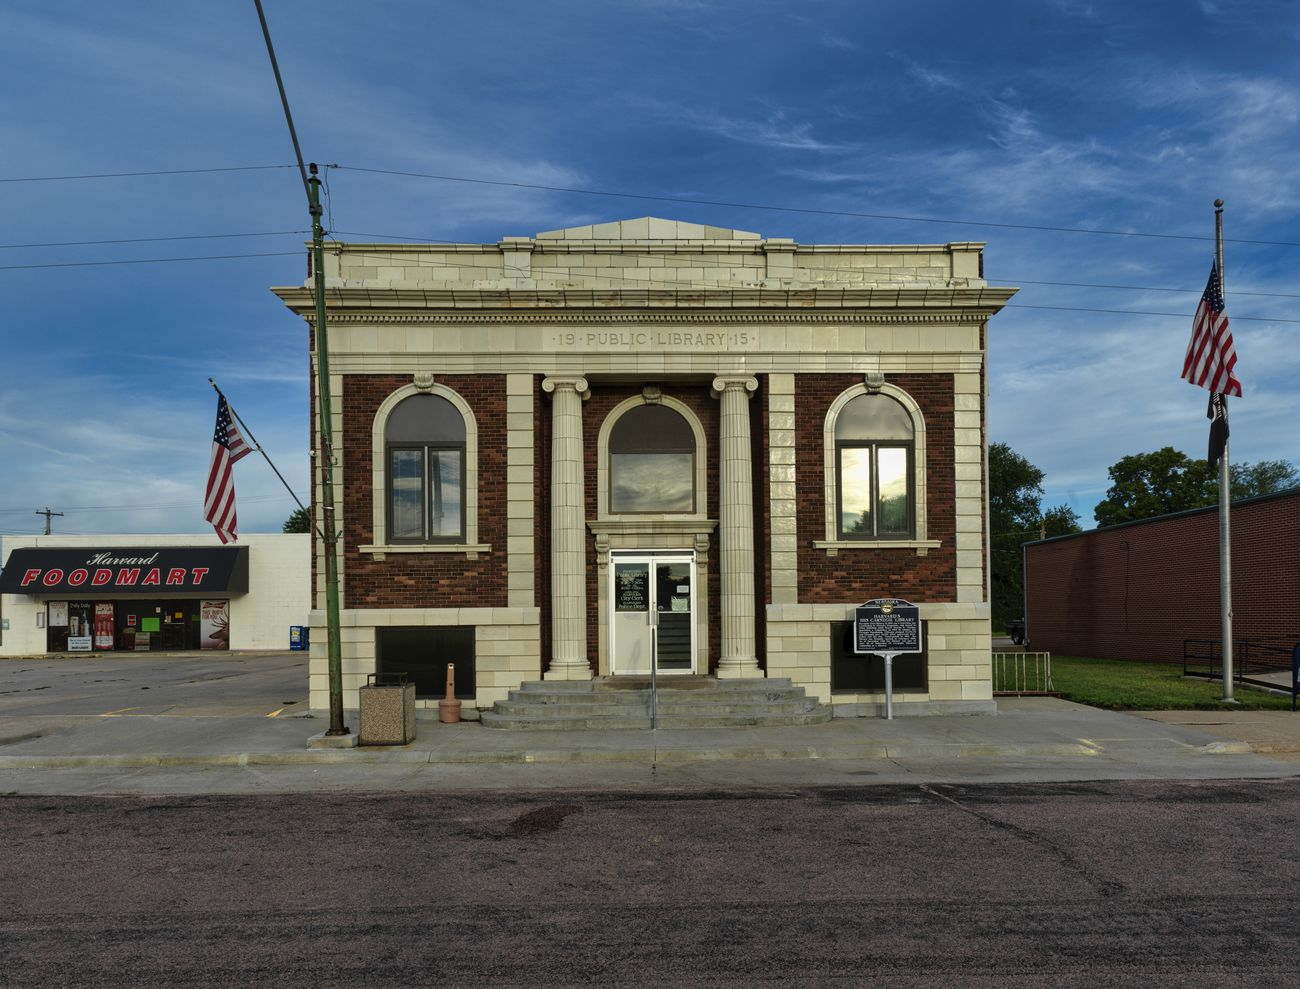 Harvard Carnegie Public Library was Built in 1915 and opened February 1916 at a cost to the town of $3,175.25 along with a donation of $6,000 by Carnegie.  It is currently used as a library.  The City Clerk's office and the Police Department are located in the lower level.